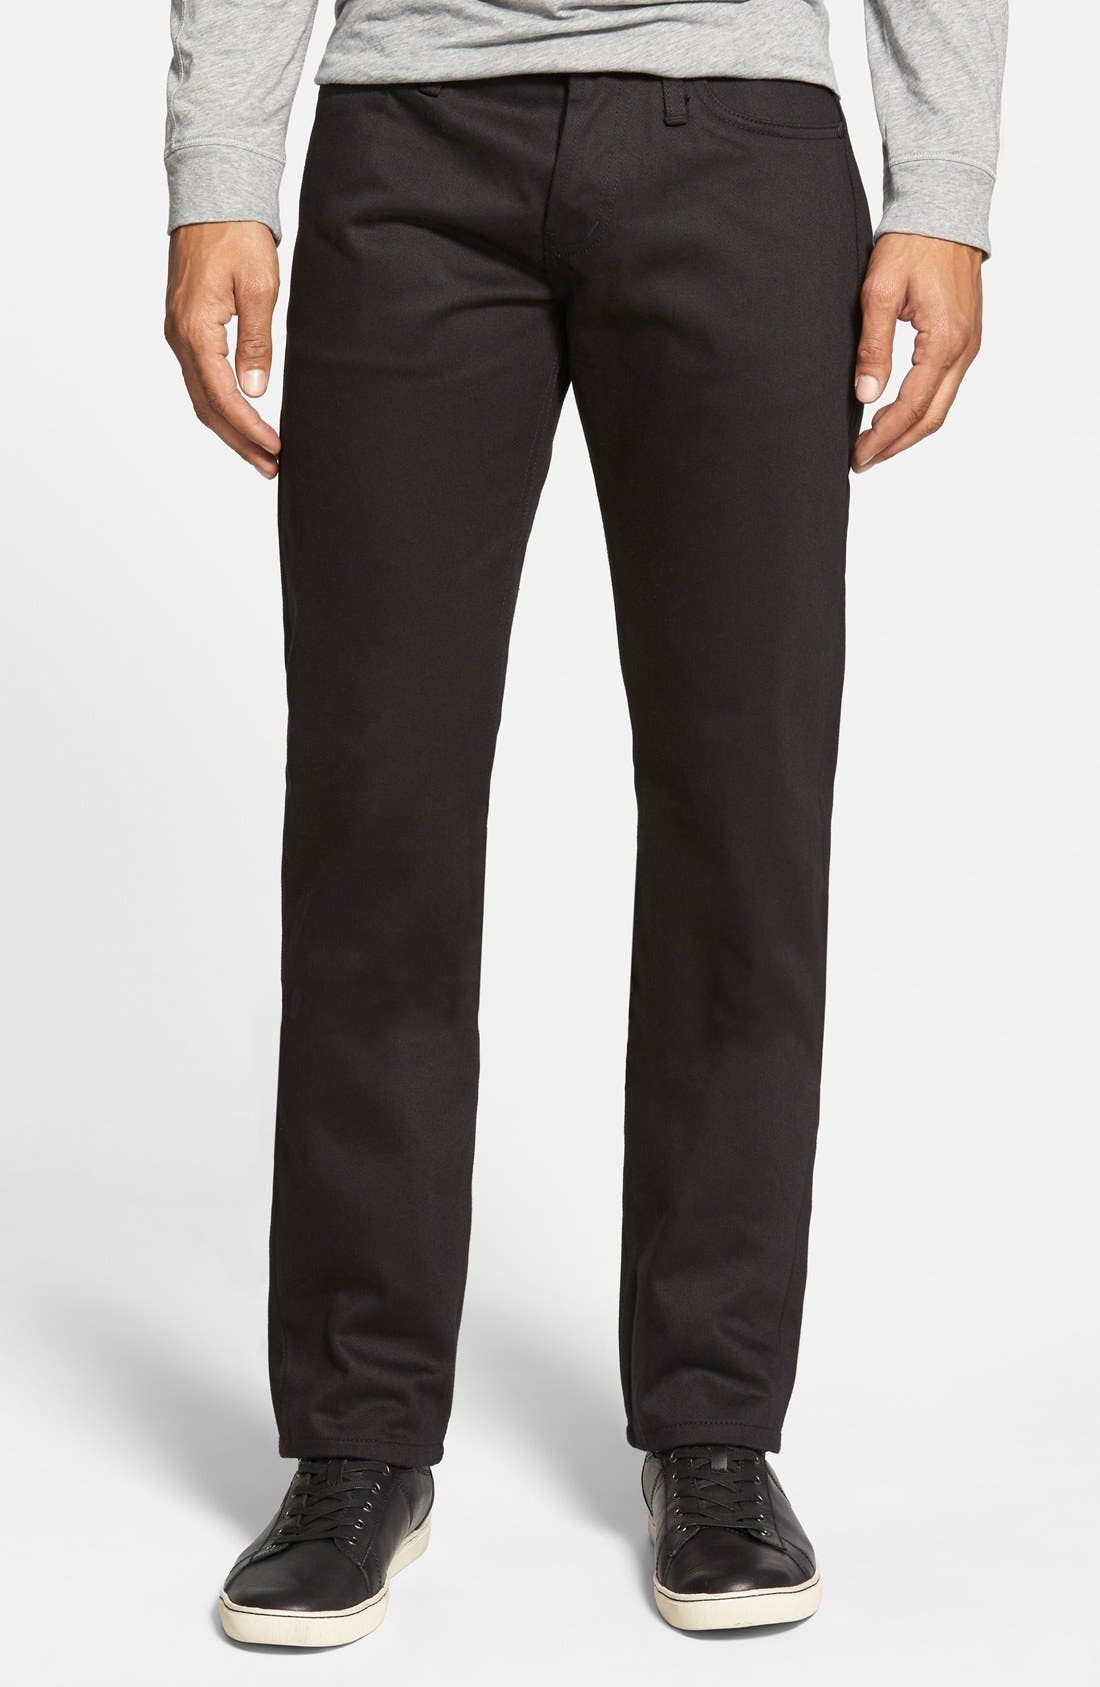 The Unbranded Brand 'UB255' Slim Tapered Fit Raw Selvedge Jeans (Black Selvedge)